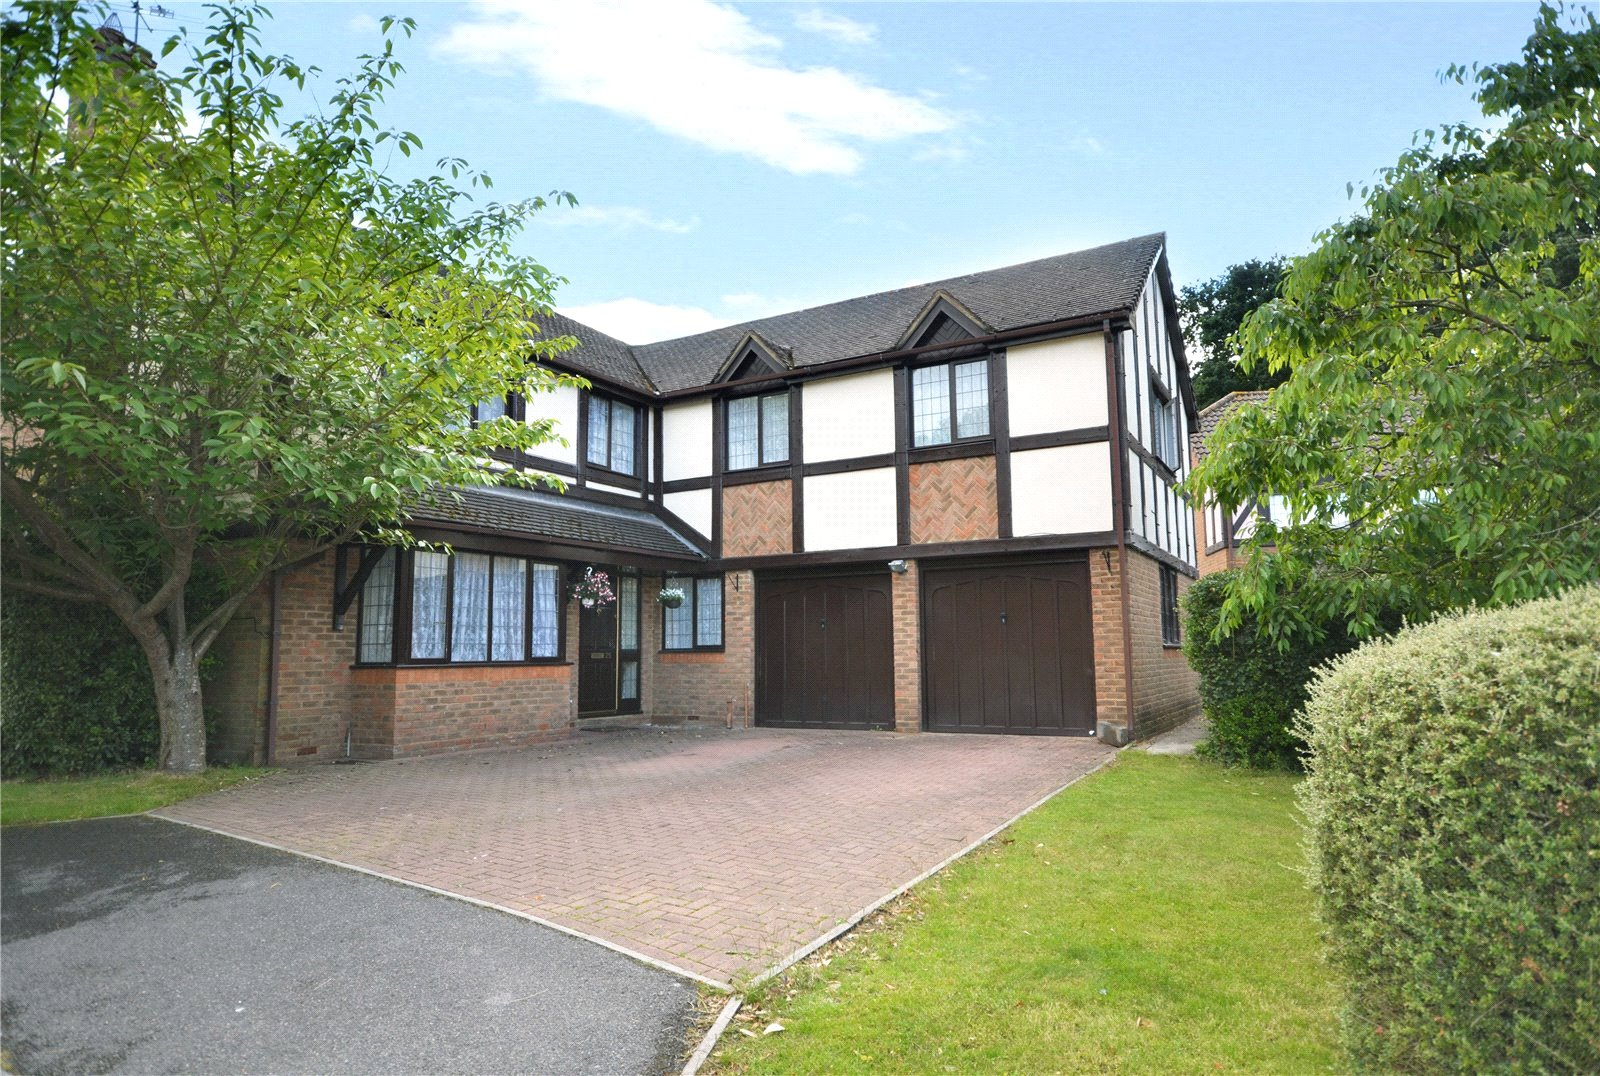 5 Bedrooms Detached House for sale in Matthews Chase, Temple Park, Binfield, Berkshire, RG42